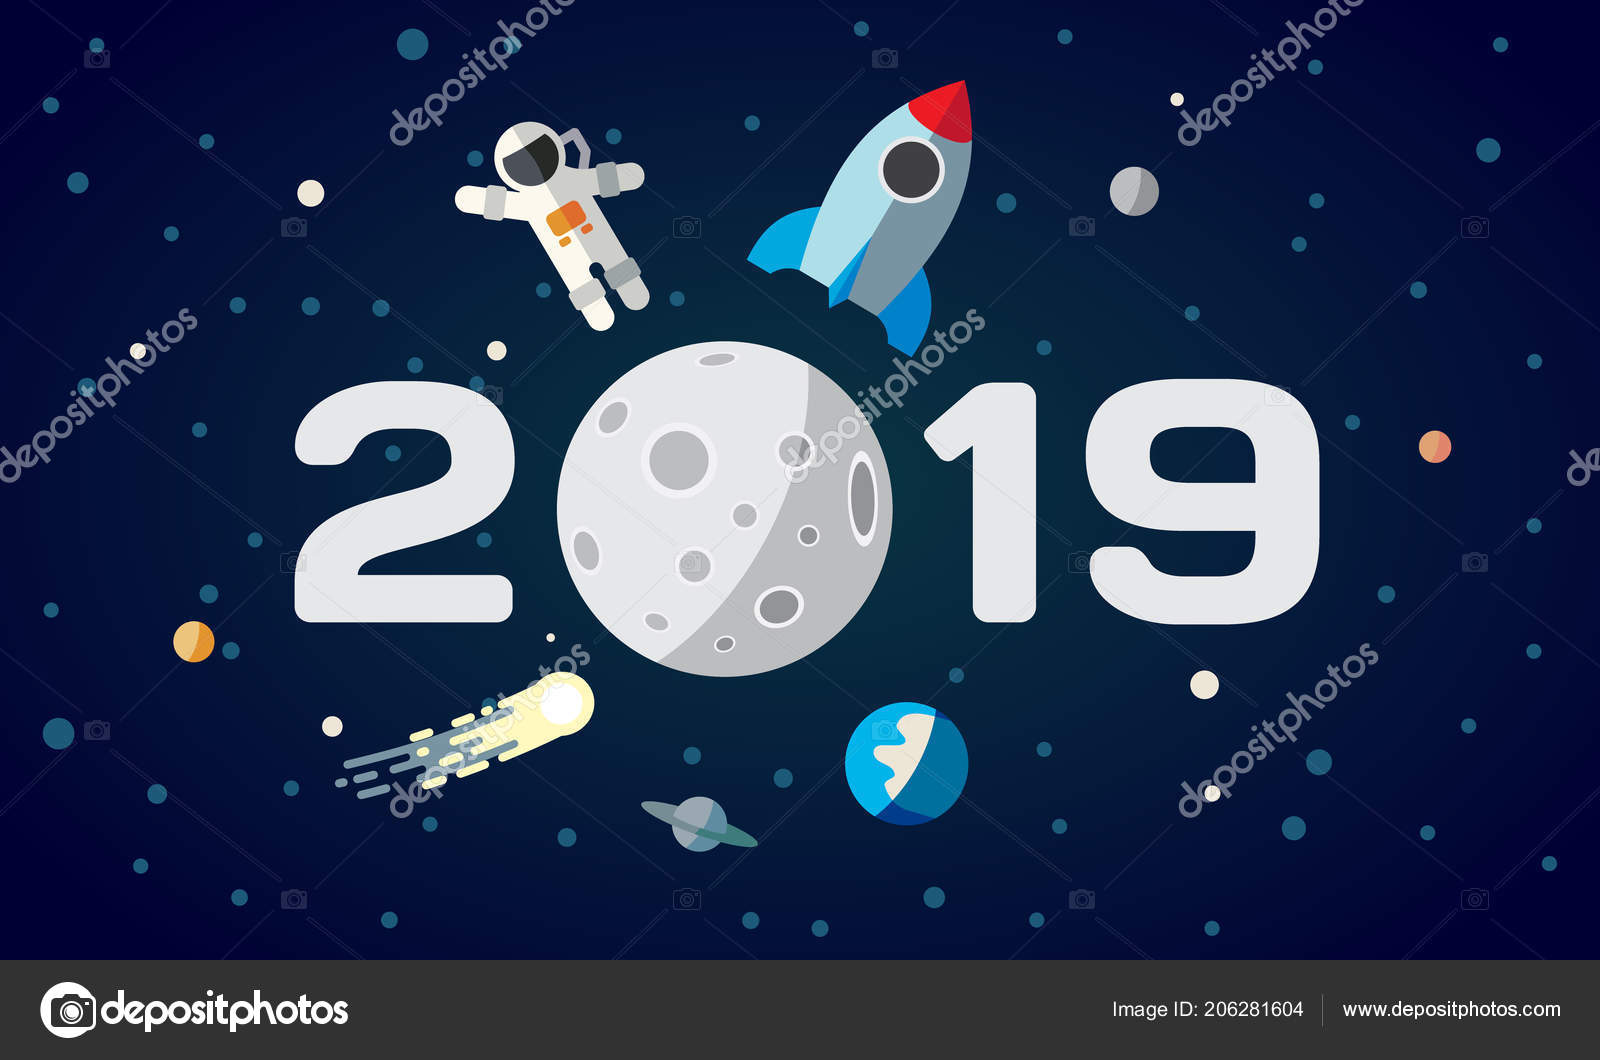 flat space theme illustration for calendar the astronaut and rocket on the moon background 2019 happy new year cover poster flyer